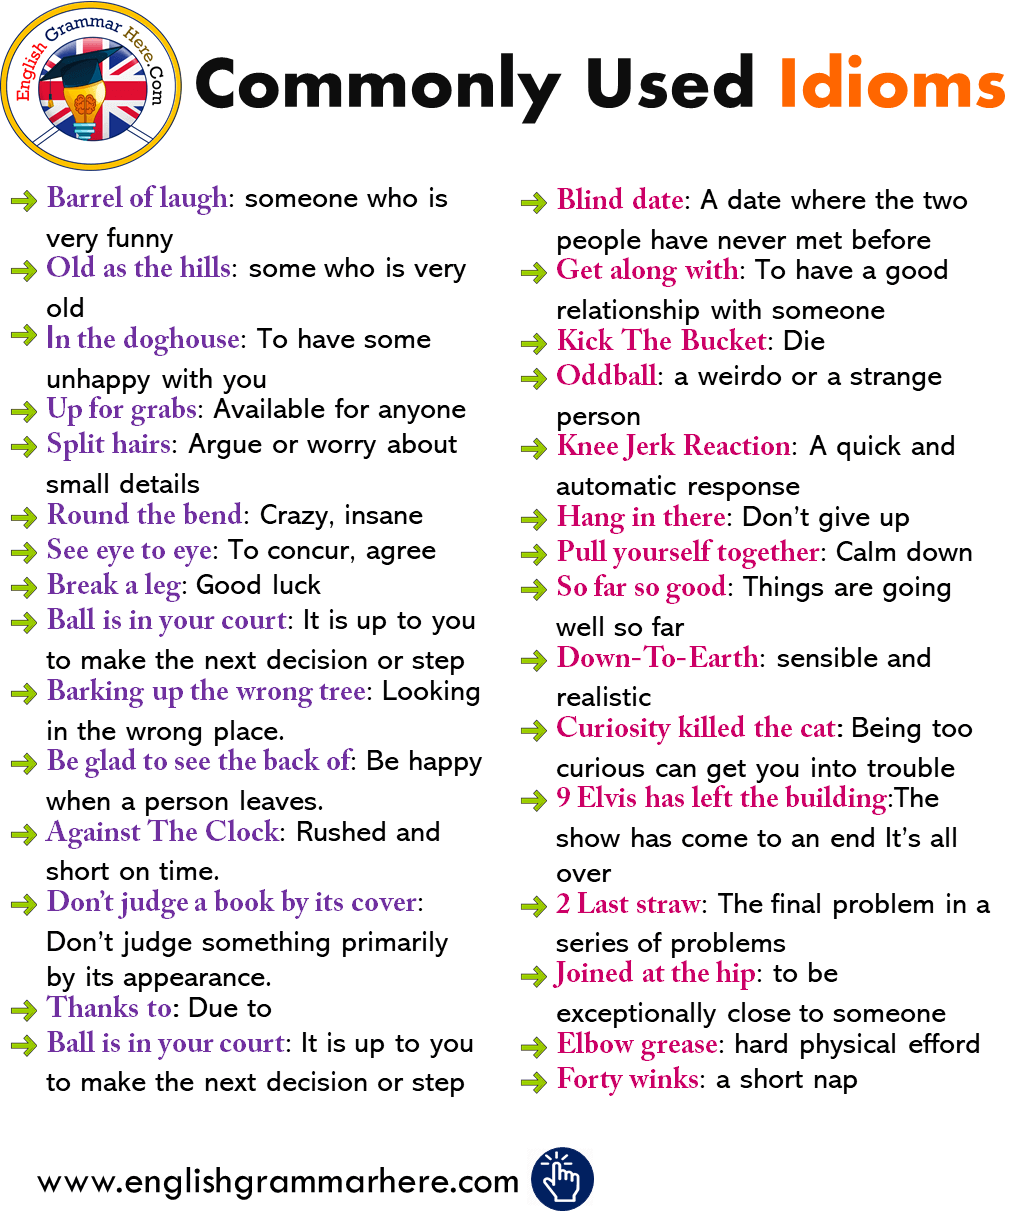 English Commonly Used Idioms List